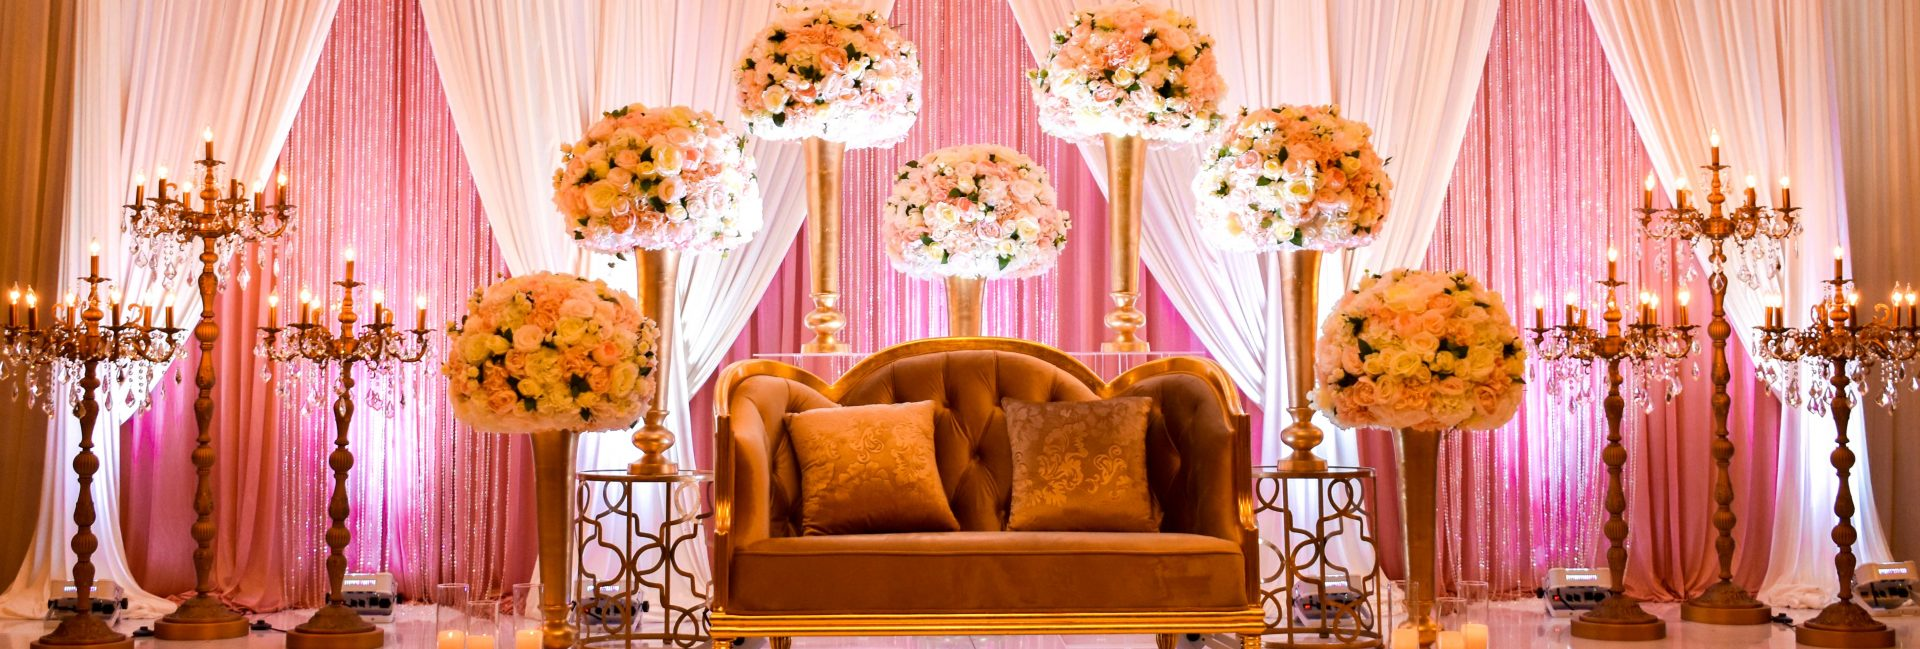 Nirali Decor Indian Wedding Decorations Mandap Design